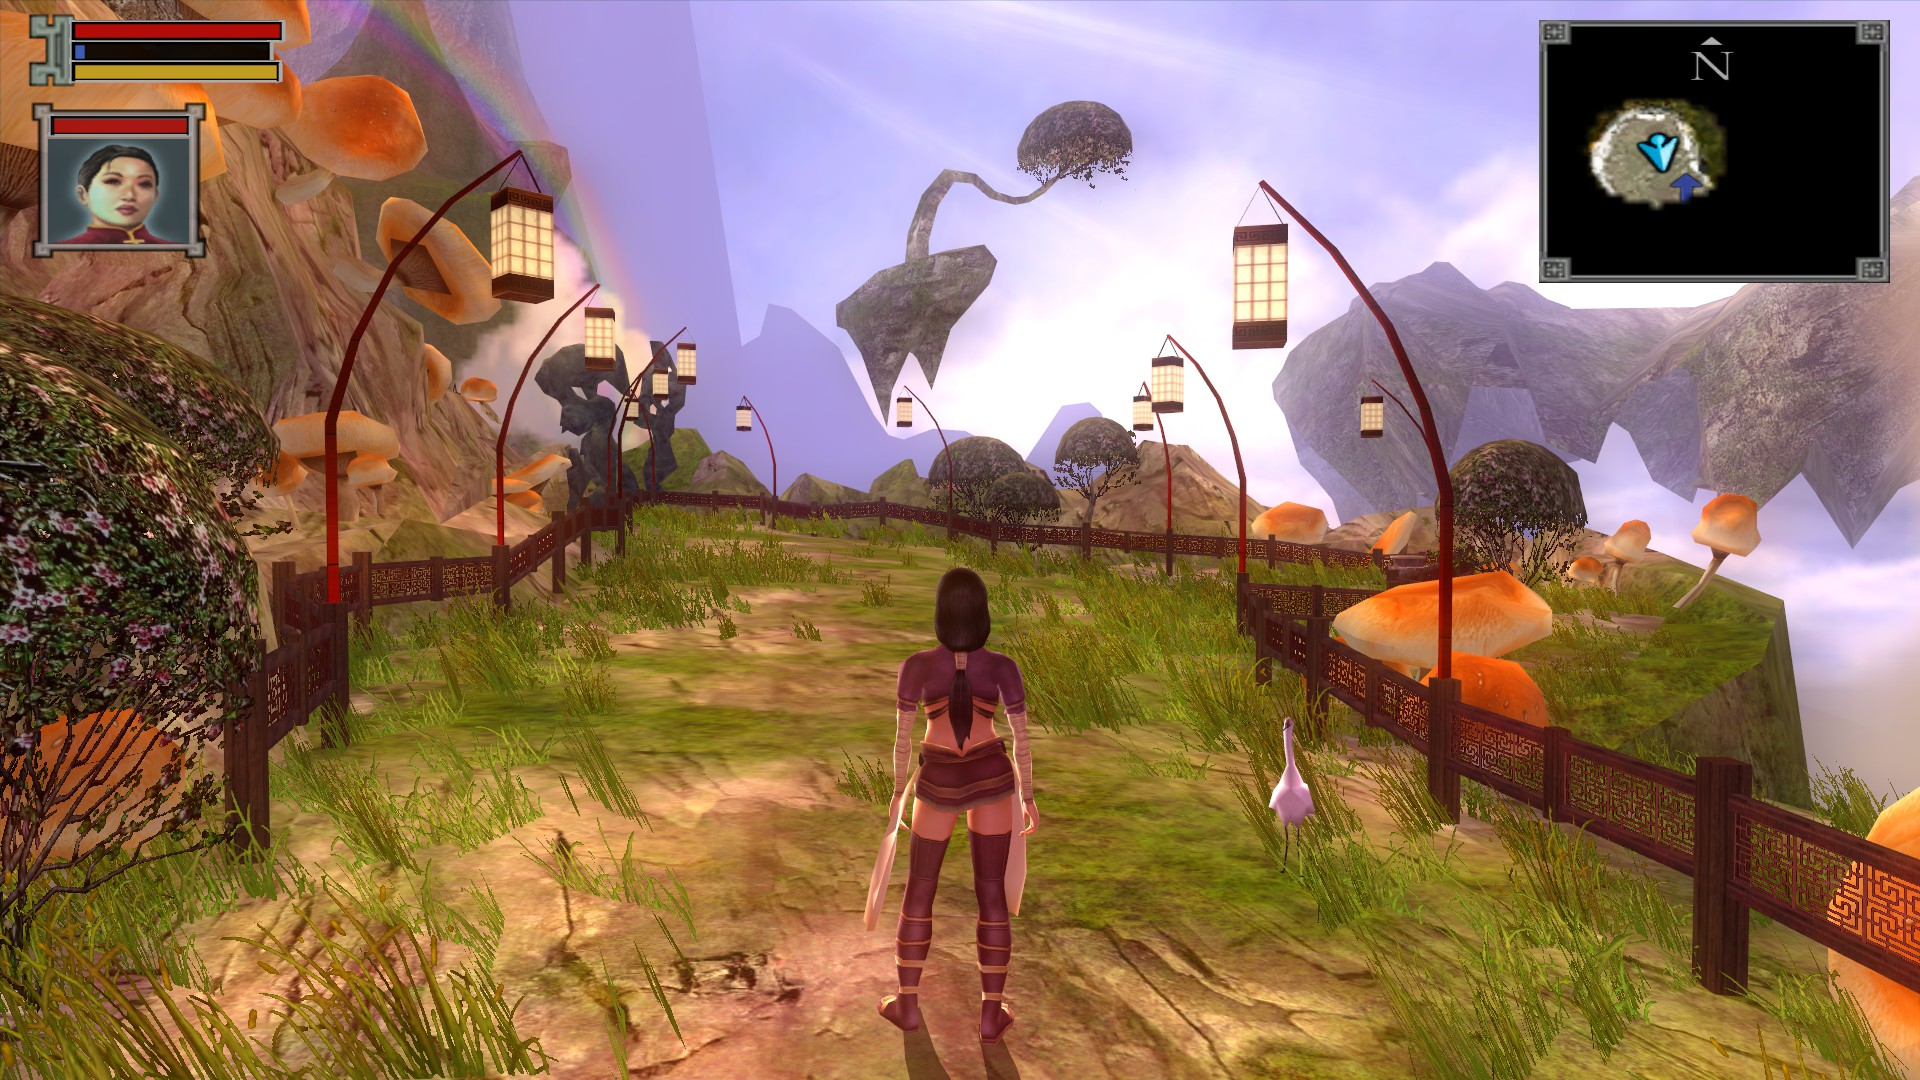 Jade Empire's world is a varied one, with great detail in its level design.